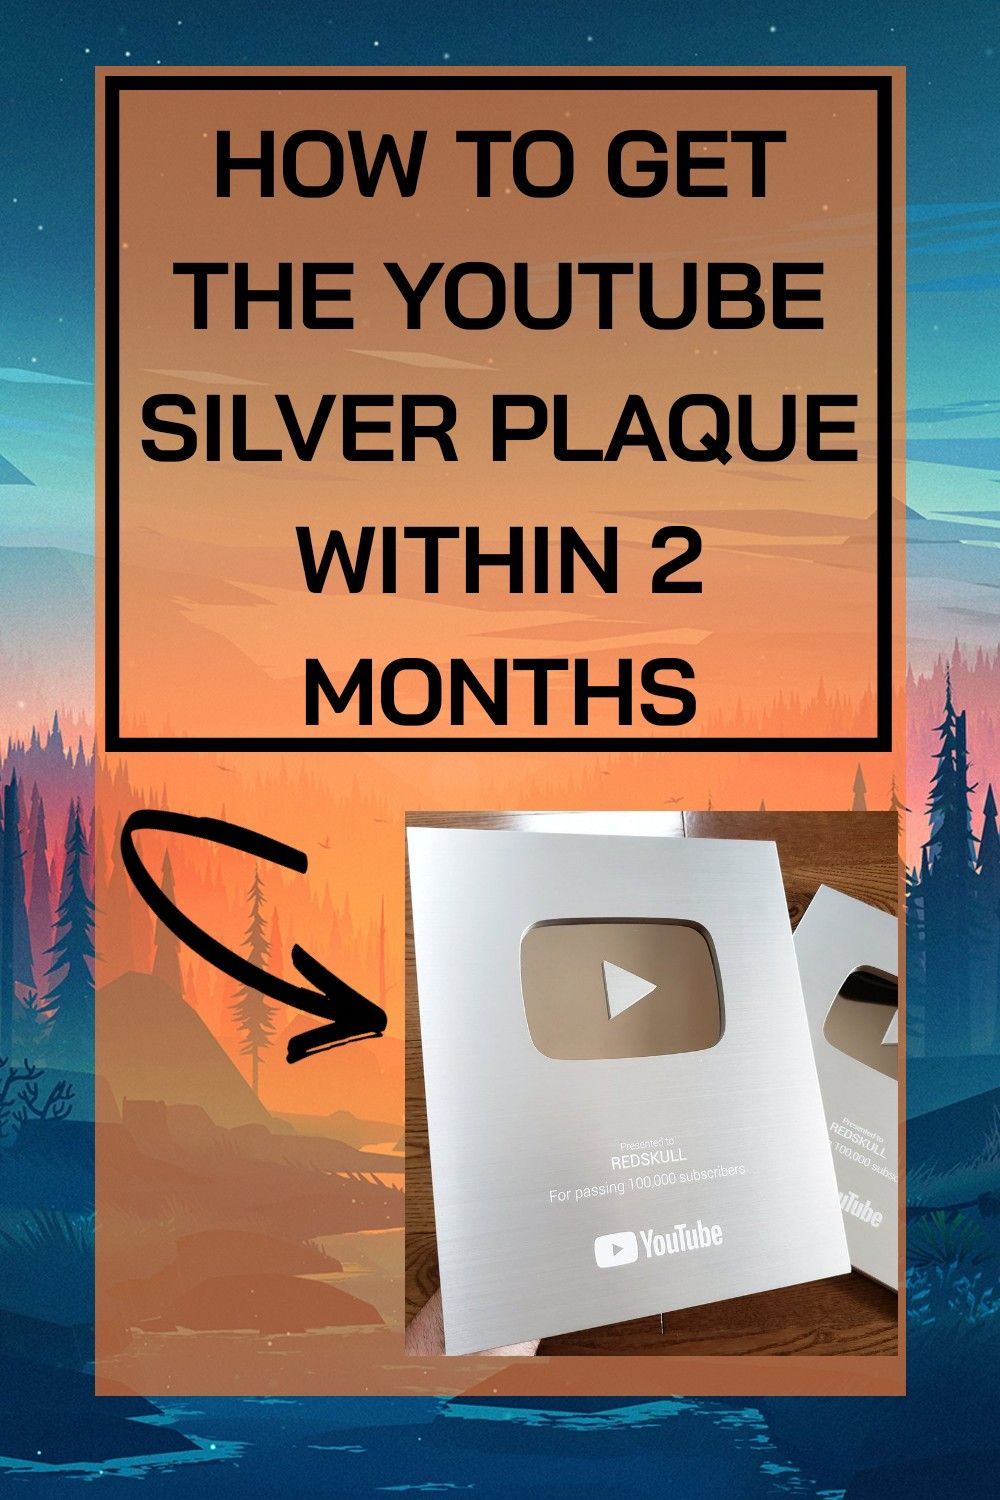 How To Get Silver Plaque Within 2 Months Youtube Channel Name Ideas Youtube Channel Ideas Youtube Challenges Ideas